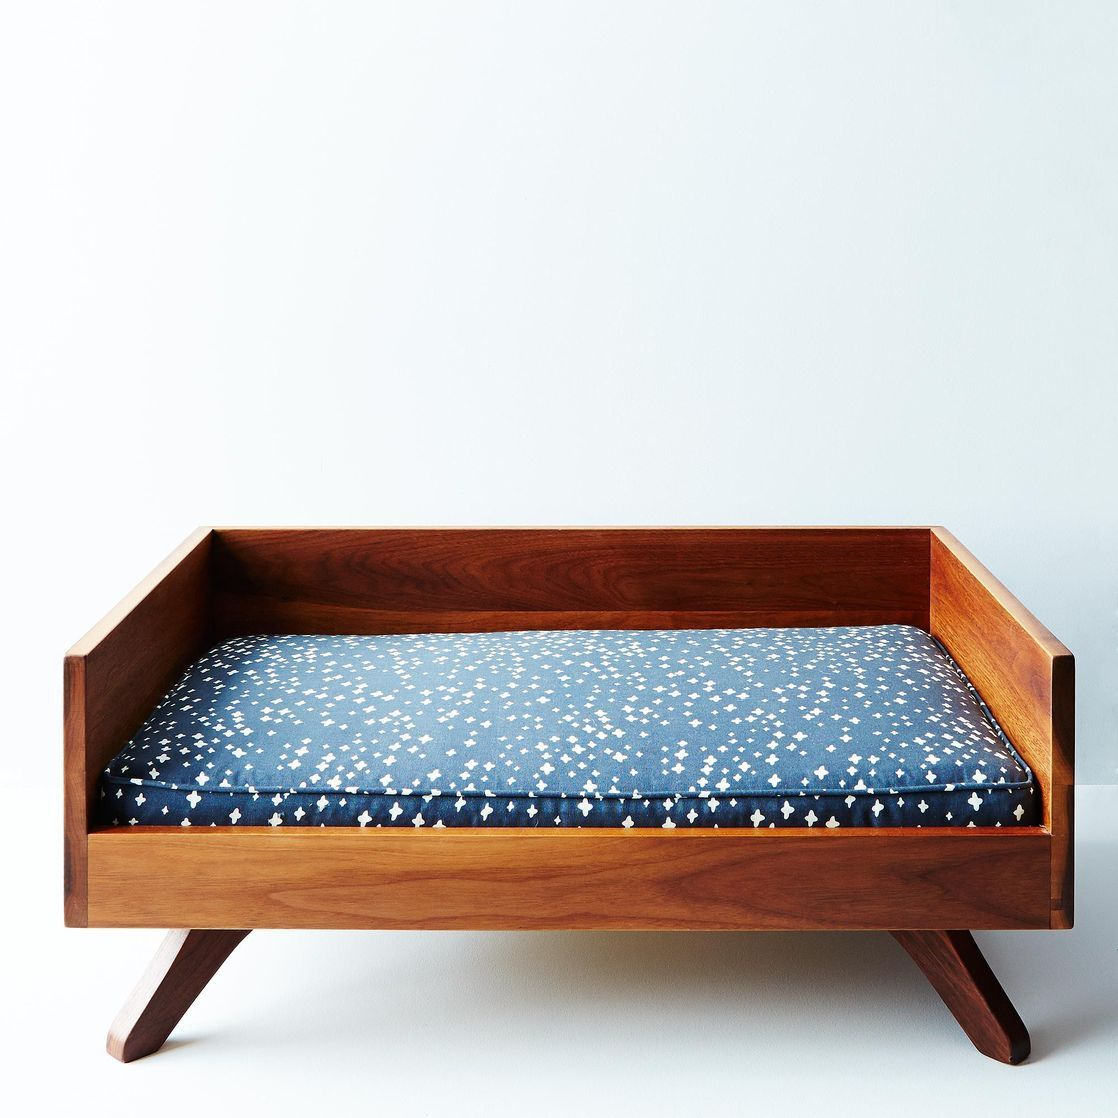 midcentury modern dog bed diy inspiration  how to diy pet stuff  - midcentury modern dog bed diy inspiration